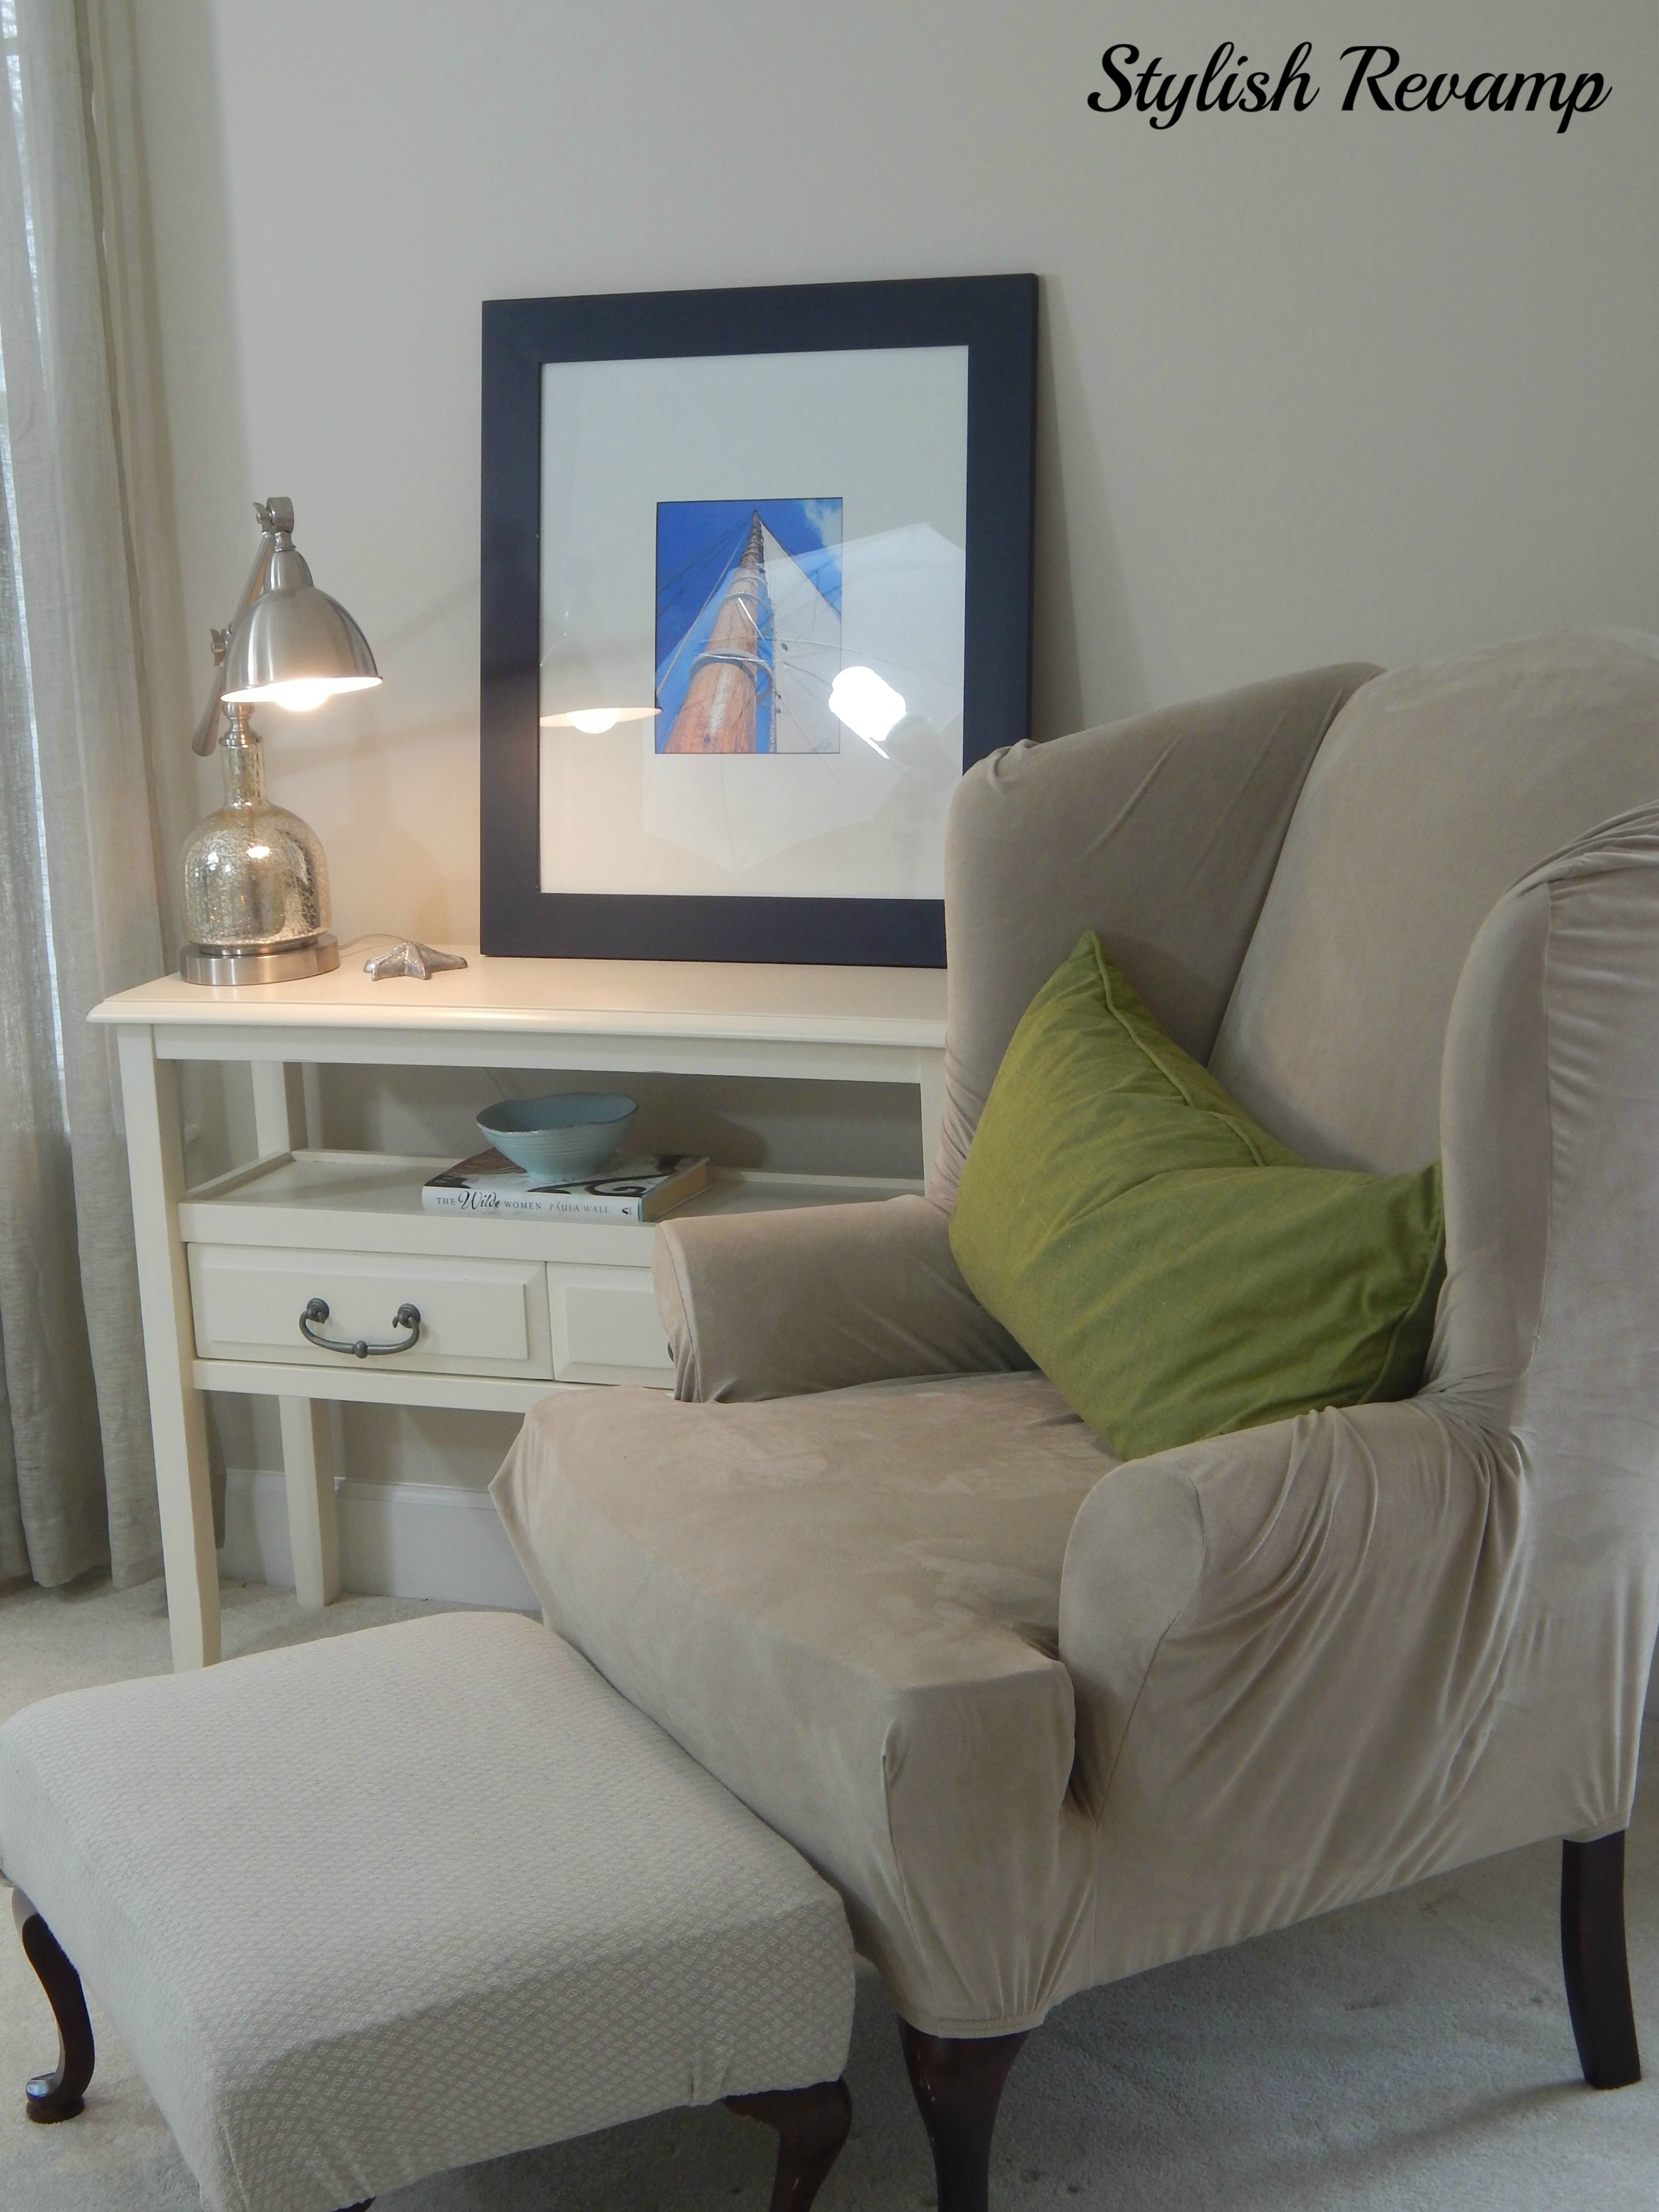 Reading Chair For Bedroom Home Tour On The Island Master Bedroom Stylish Revamp